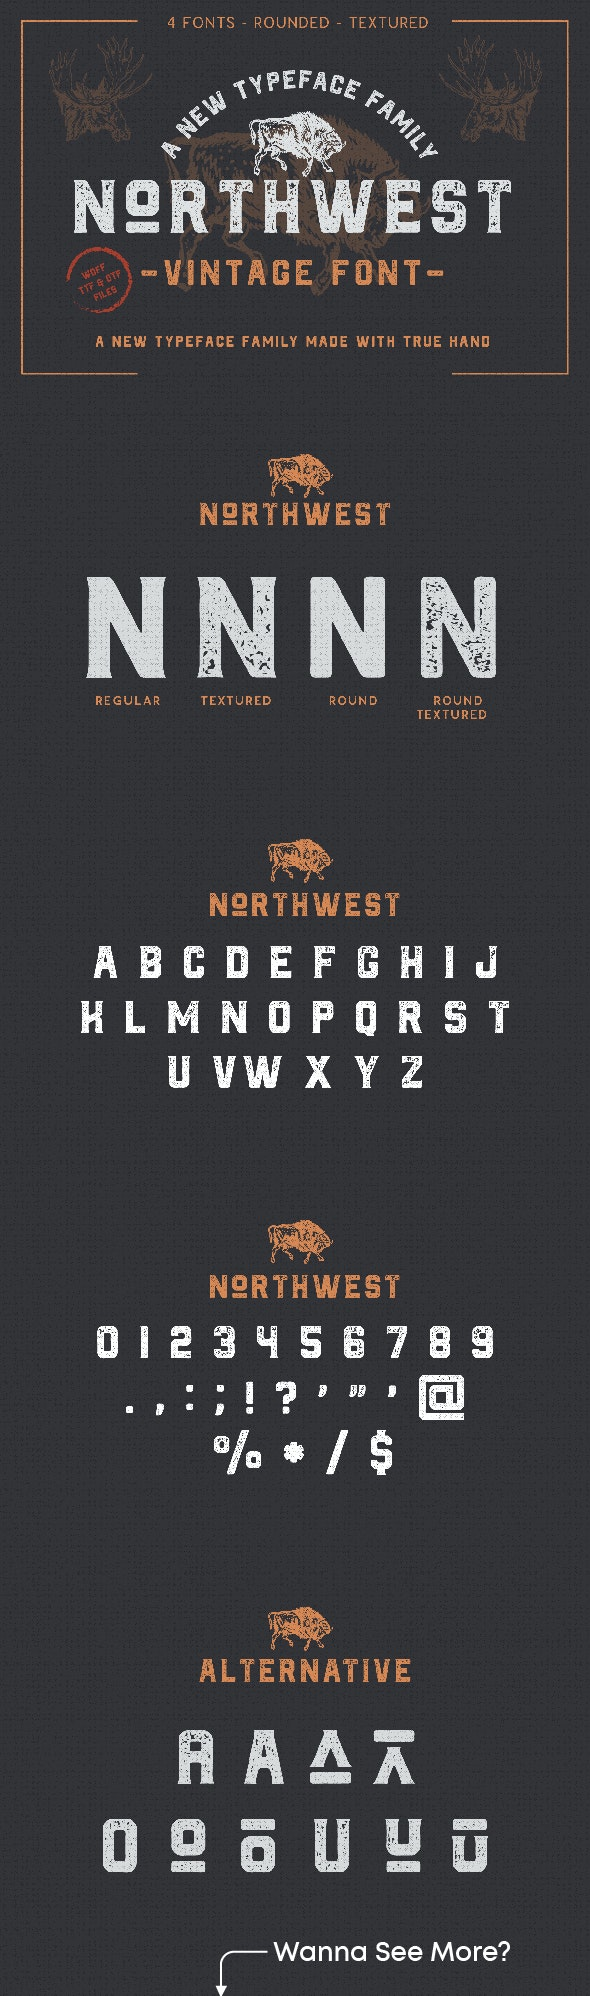 The Northwest - Vintage Font - Sans-Serif Fonts